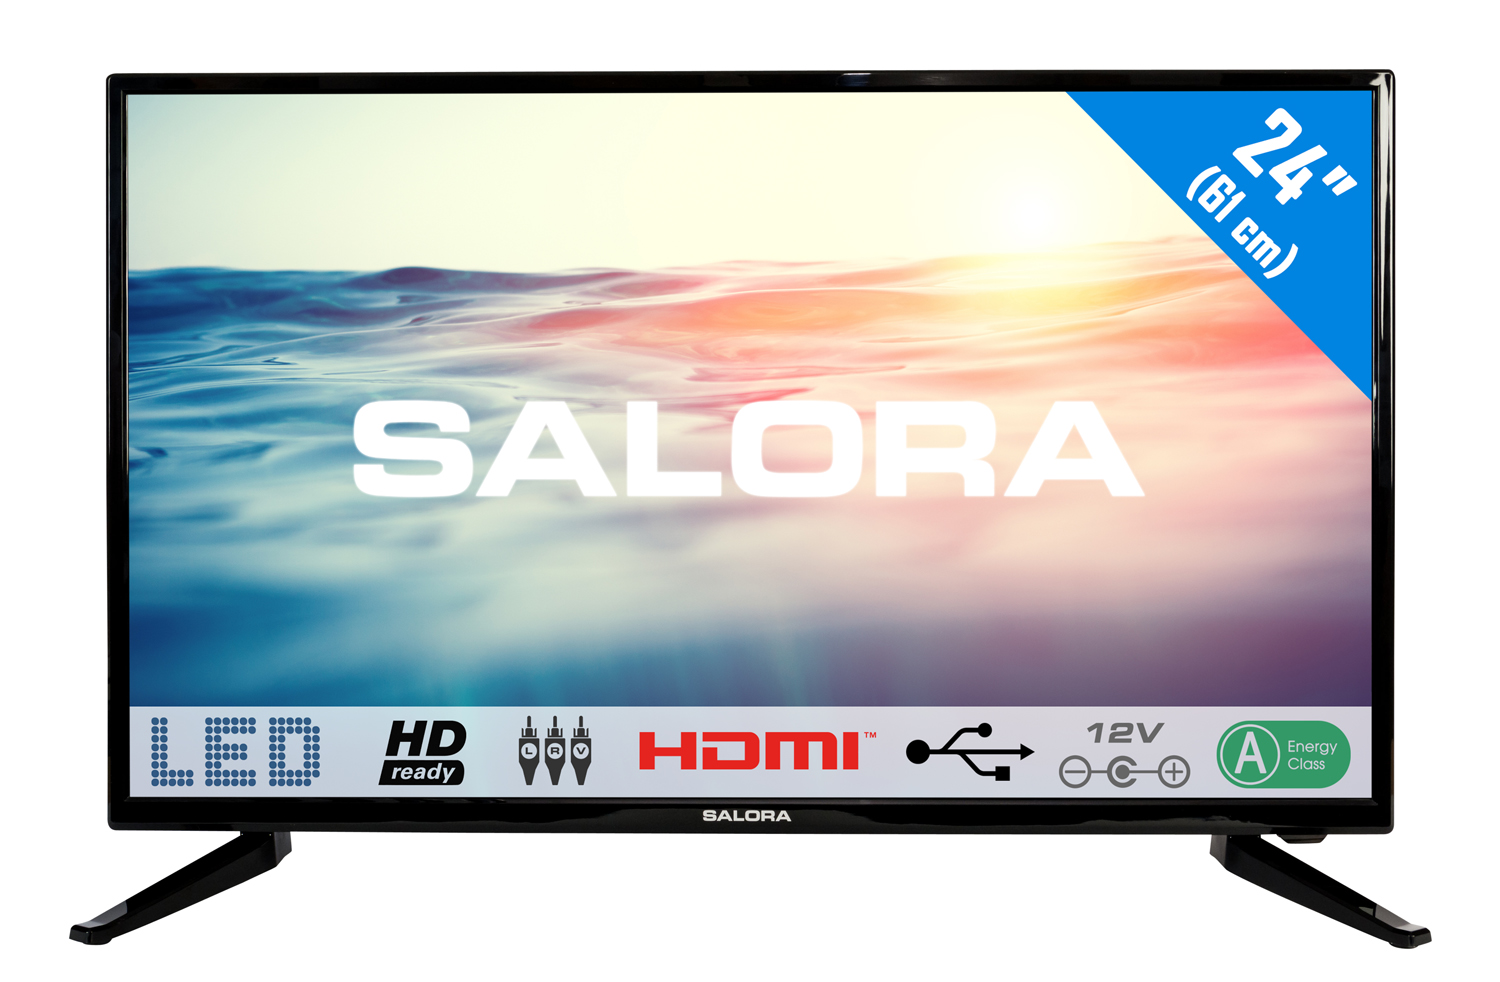 24LED1600, 24''/61cm LED TV, hd ready 12v usb-mediaplayer HDMI scart analog tuner a